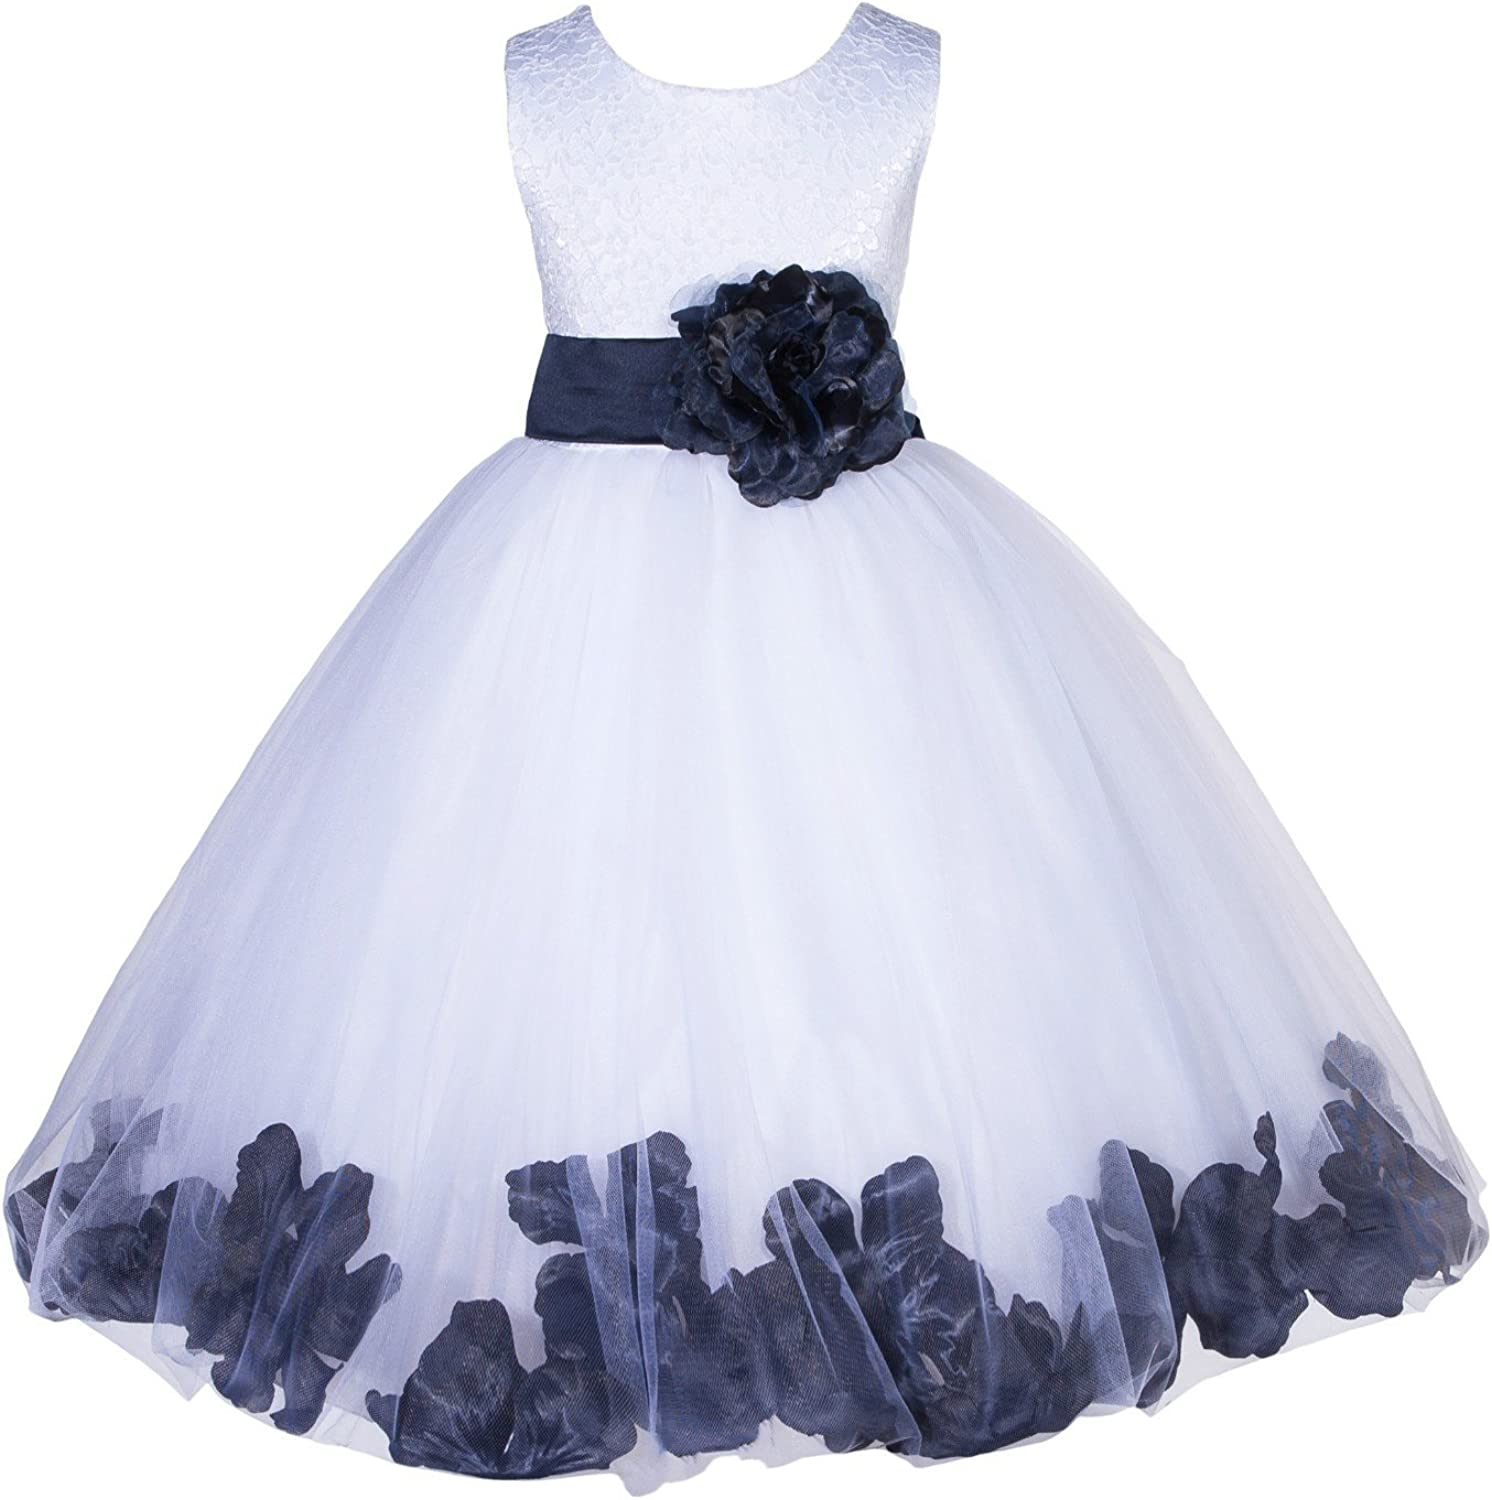 White Lace Top Tulle Floral Petals Flower Girl Dress Christening Dresses 165S